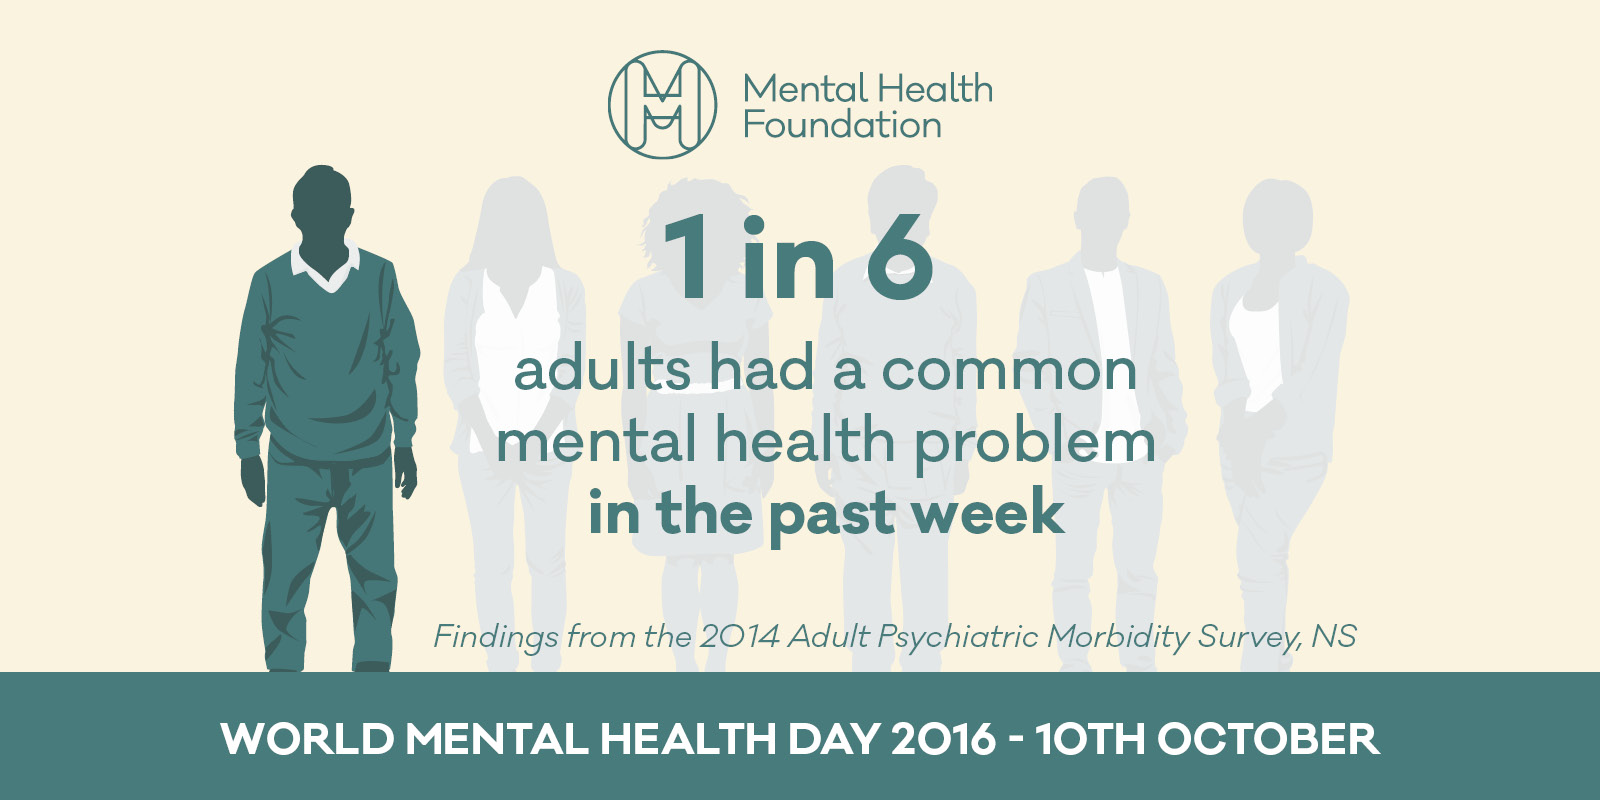 world mental health day   monday 10th october 2016